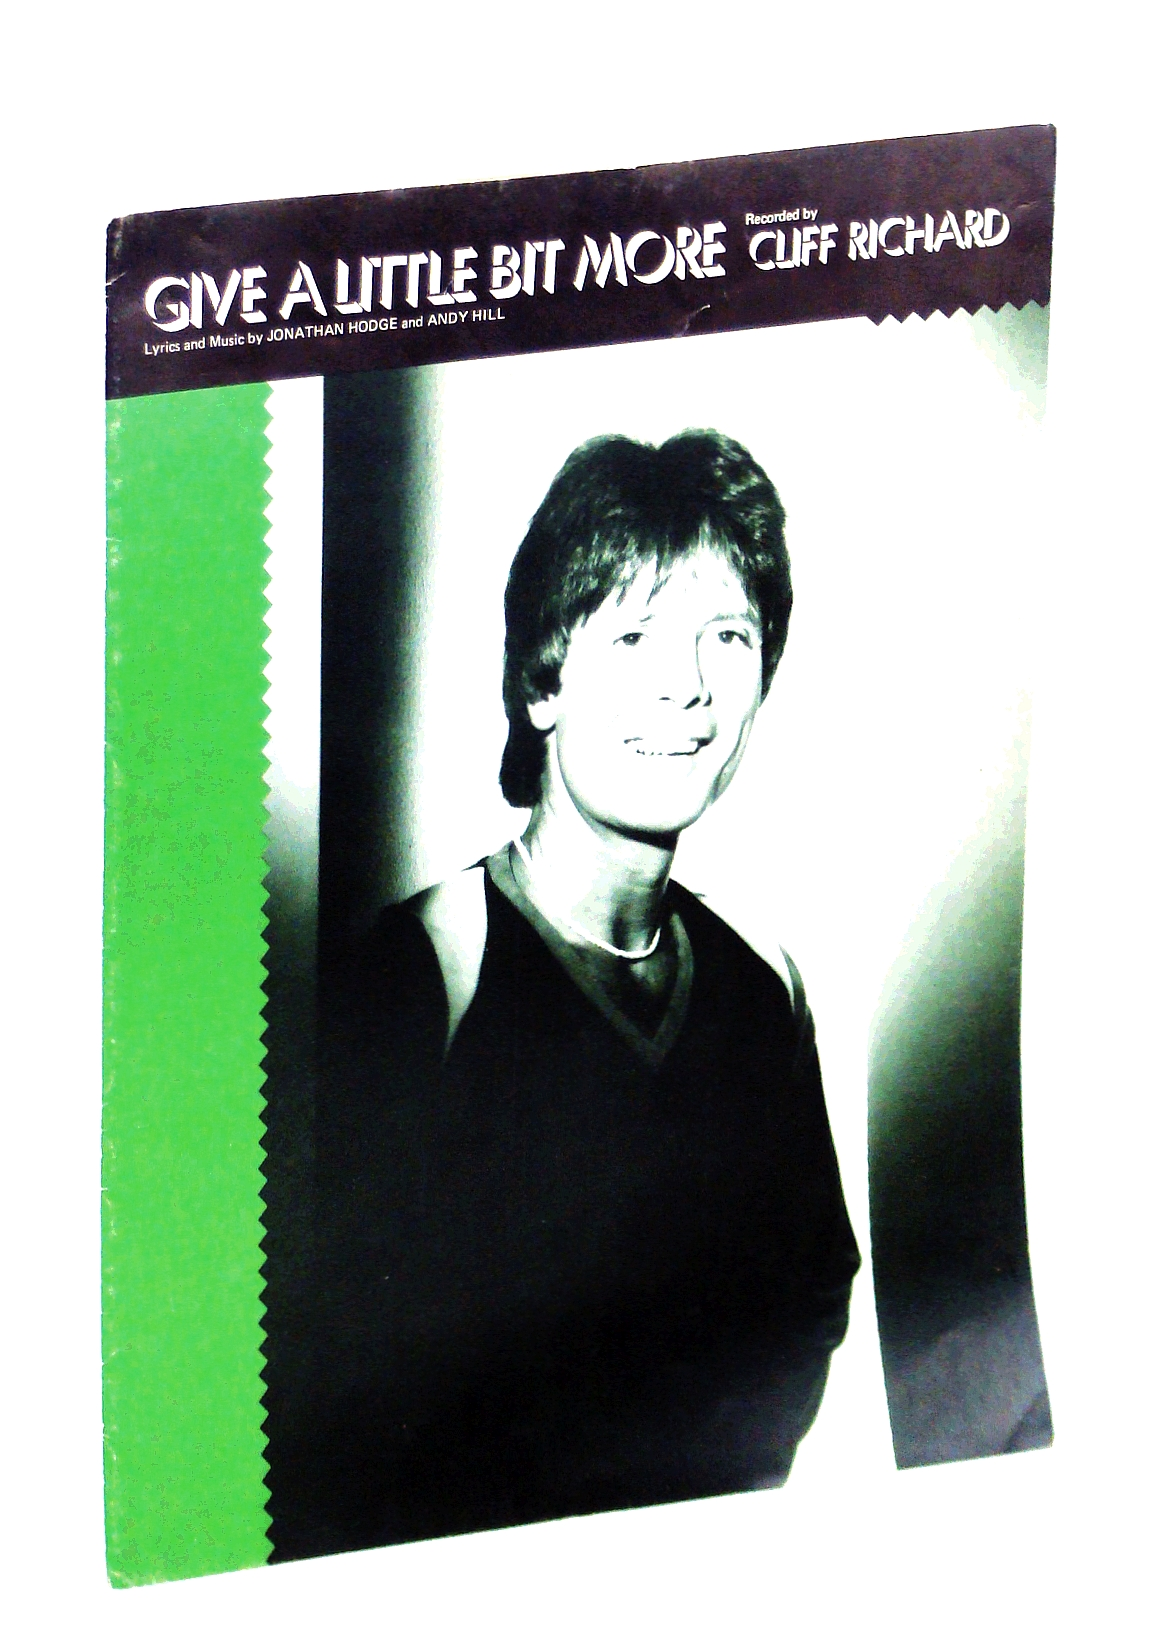 Image for Give a Little Bit More - Recorded By Cliff Richard: Sheet Music for Voice and Piano with Guitar Chords